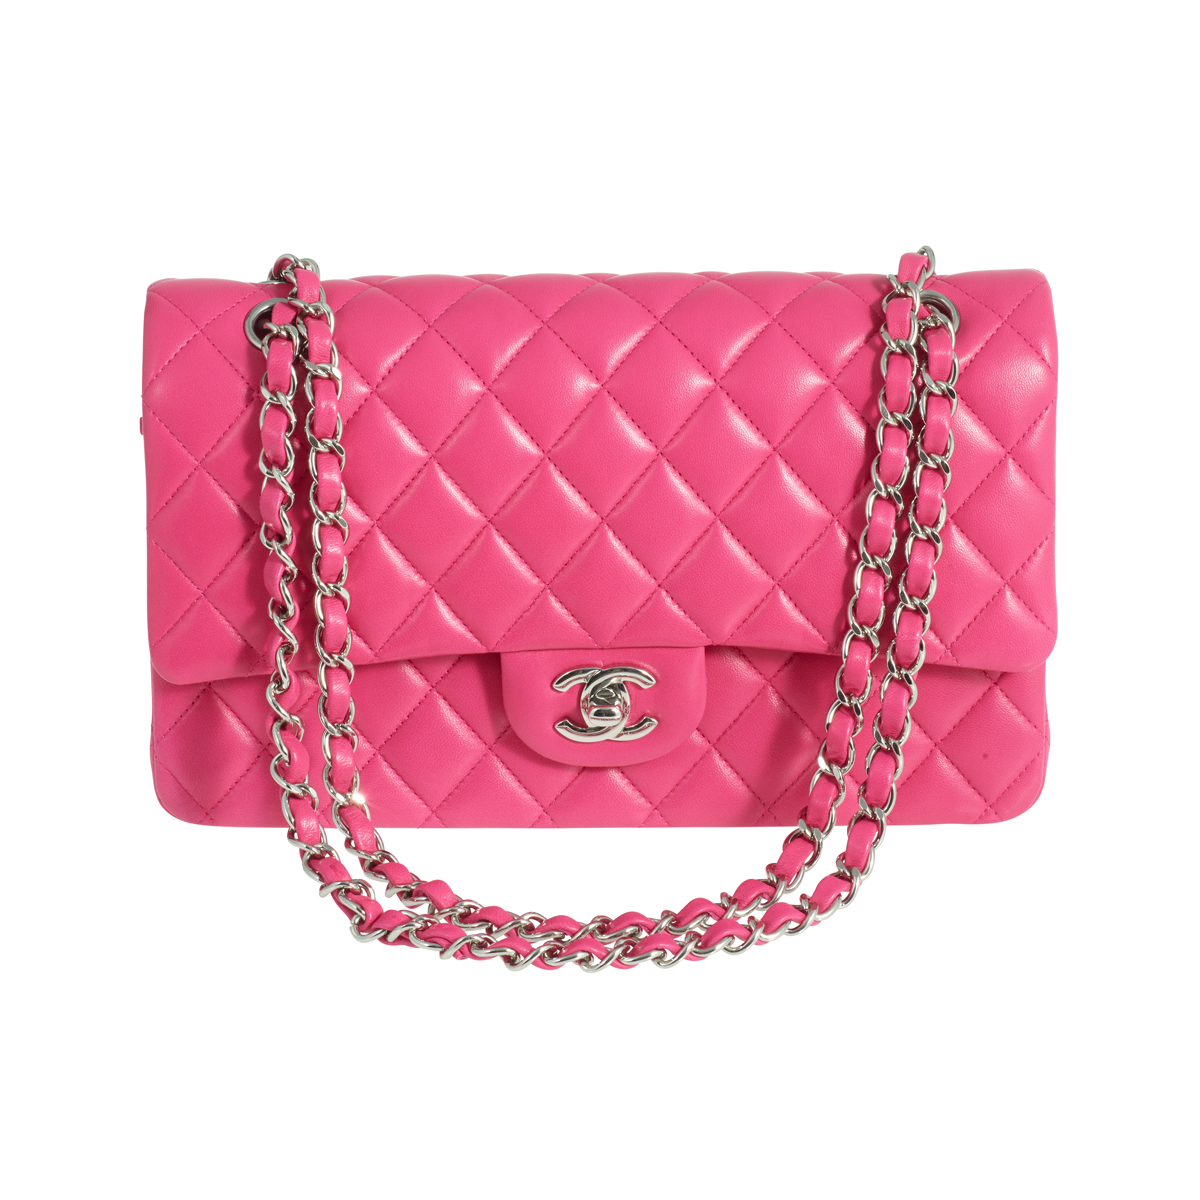 d0c2e0150b45 CHANEL Classic Double Flap Medium Hot Pink Lambskin Silver Hardware 2014